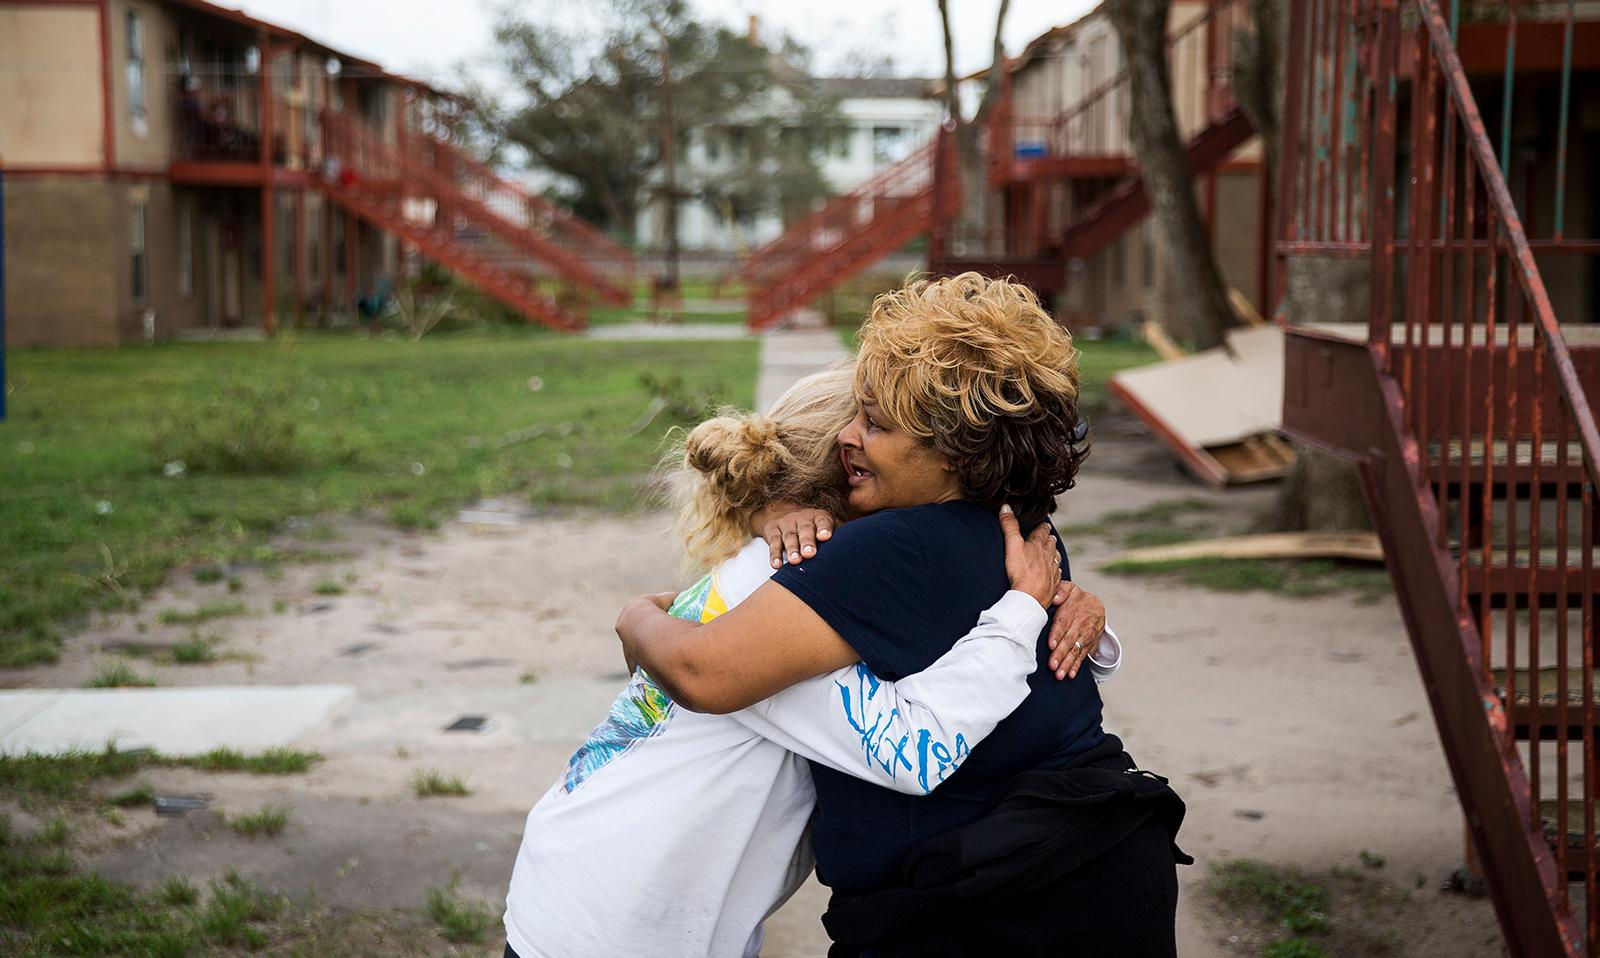 "Genice Gipson hugs her lifelong friend, Loretta Capistran, outside of Capistran's apartment complex in Refugio, Texas, on Monday, Aug. 28, 2017. ""We got to be strong, baby,"" Gipson told Capistran. (Nick Wagner/Austin American-Statesman via AP)"